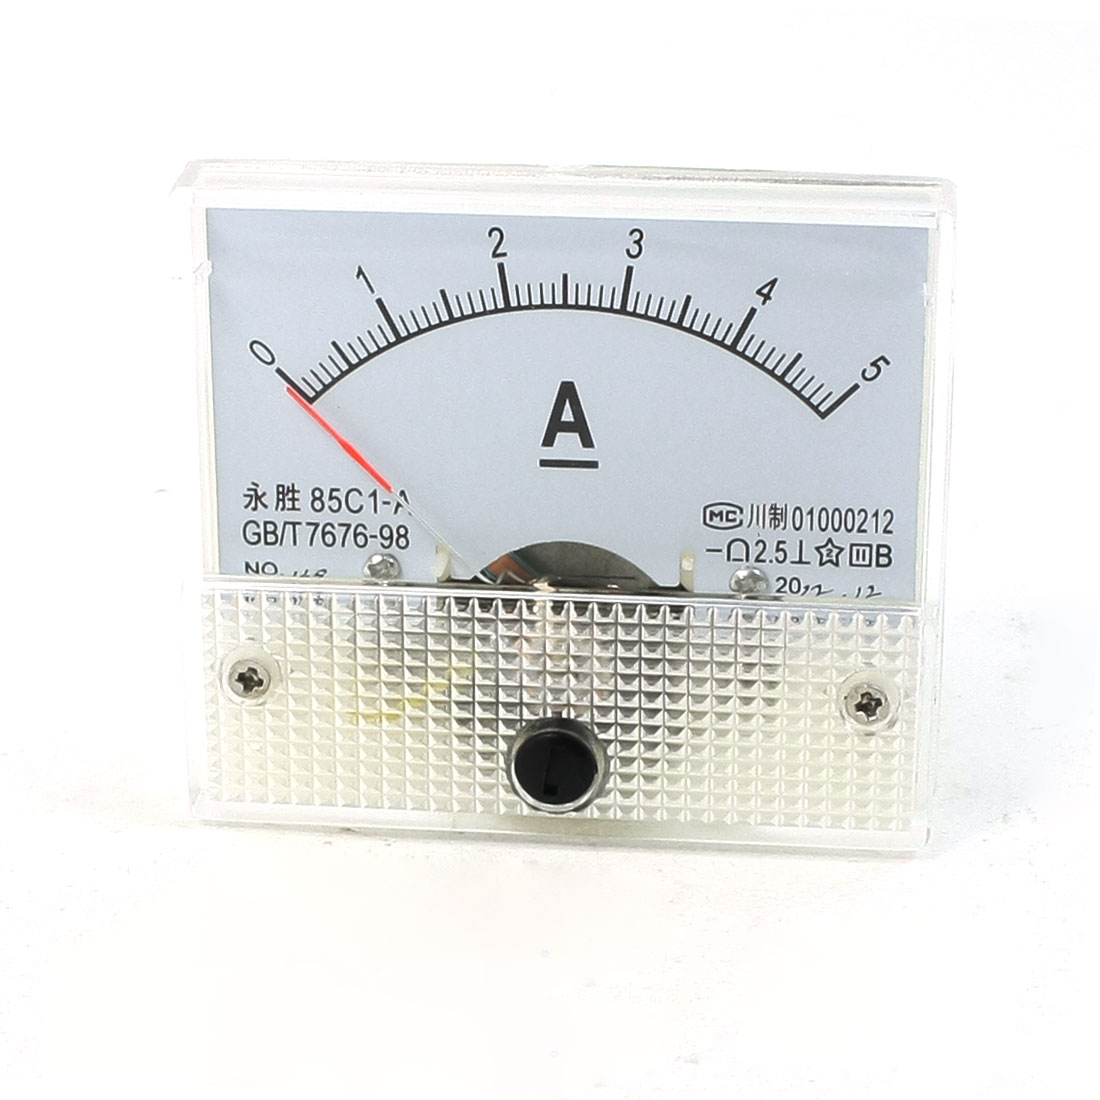 Clear Shell DC 0-5A Analog Panel Ammeter Gauge 85C1-A